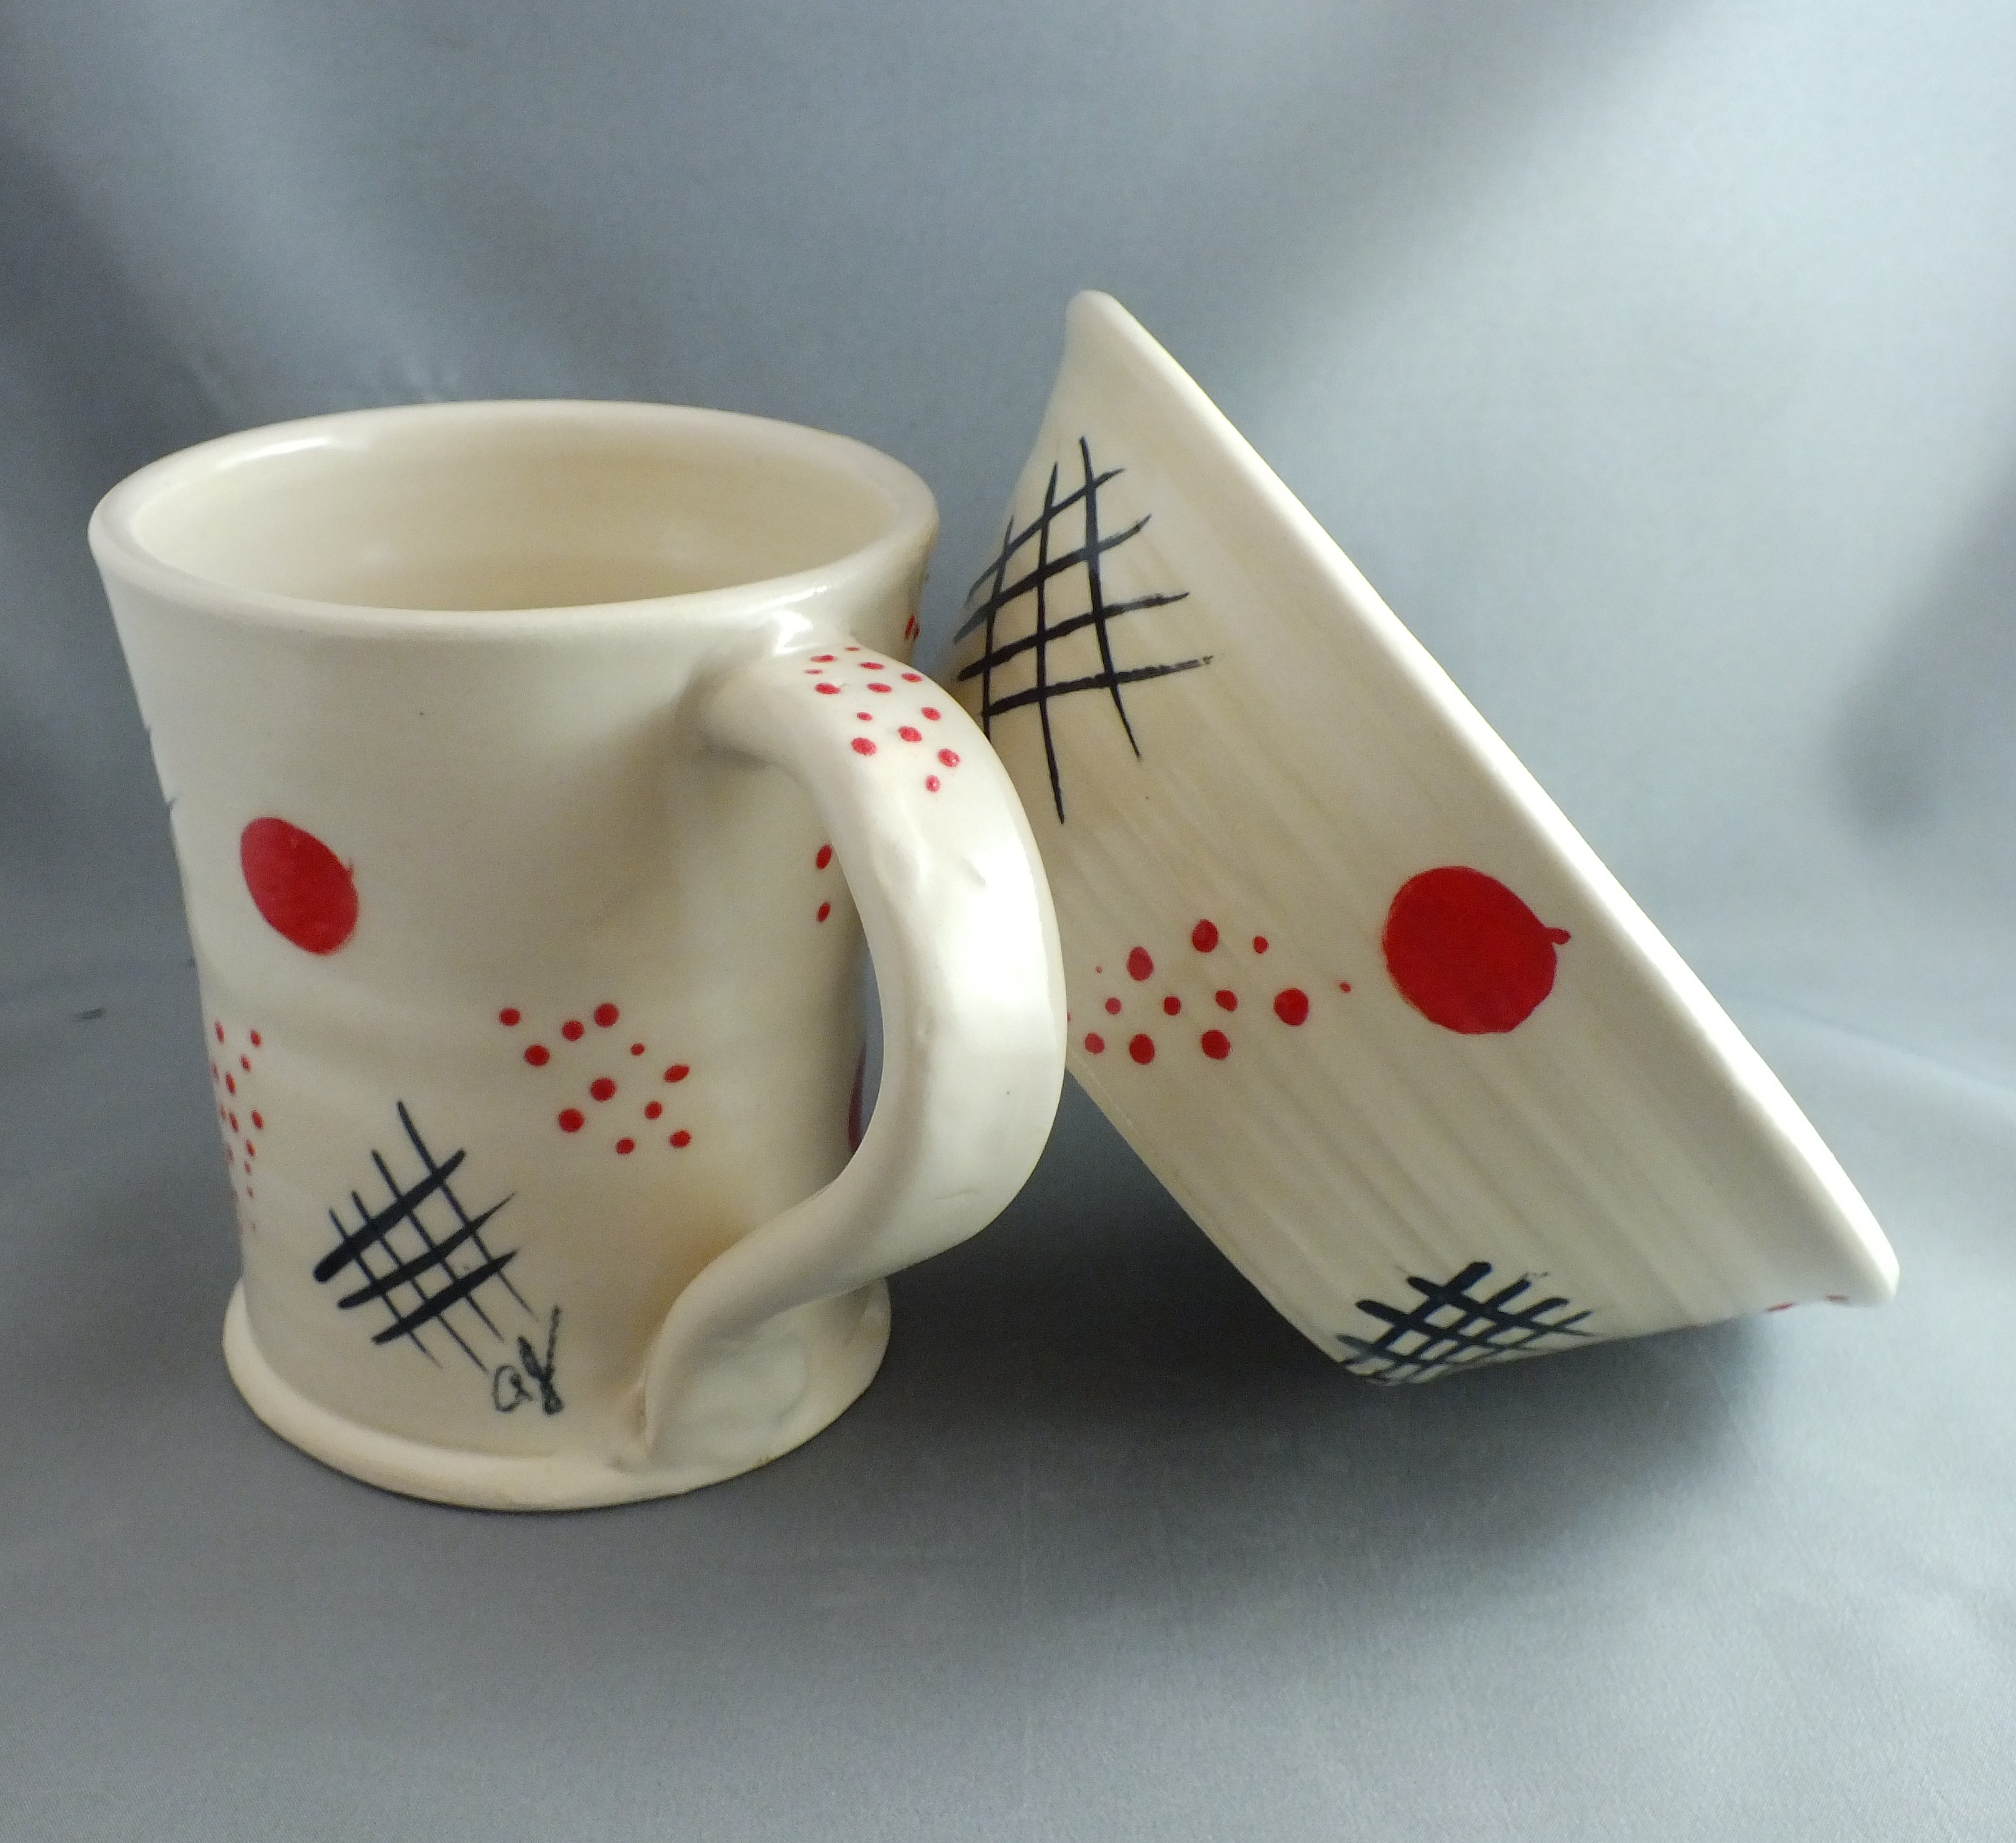 AJ mug and bowl set 2